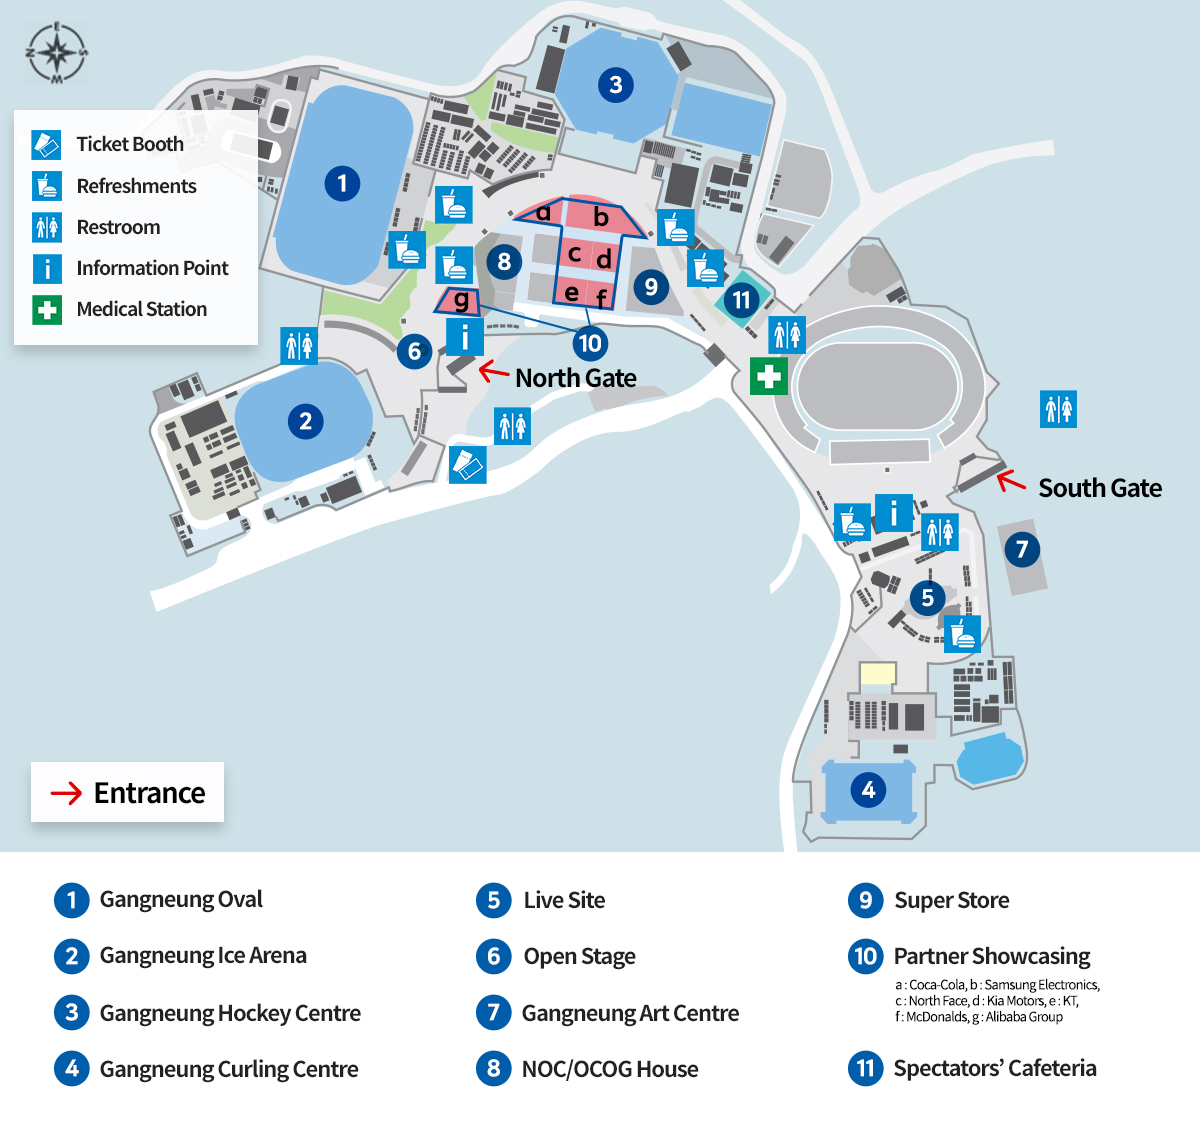 PyeongChang 2018 Map Gangneung Olympic Park Architecture of the Games